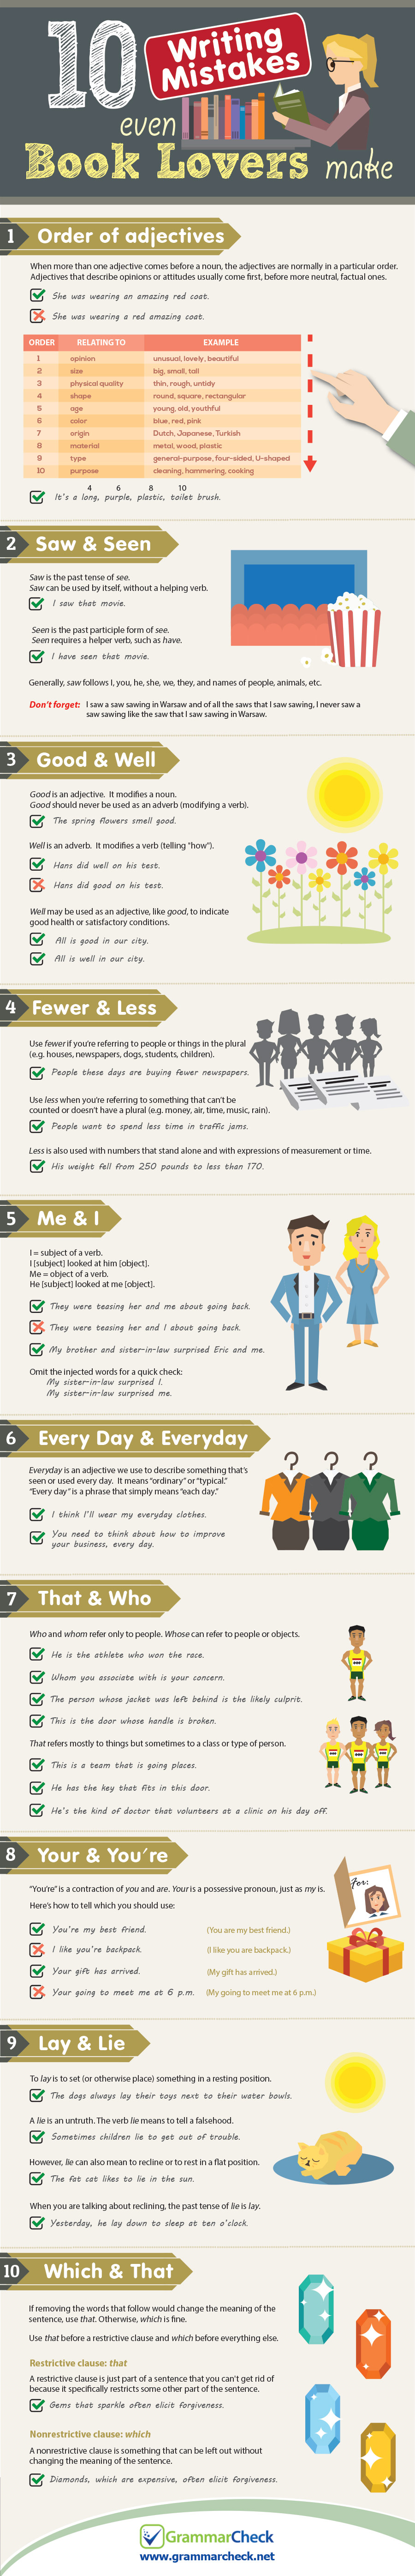 10 Writing Mistakes Even Book Lovers Make (Infographic)